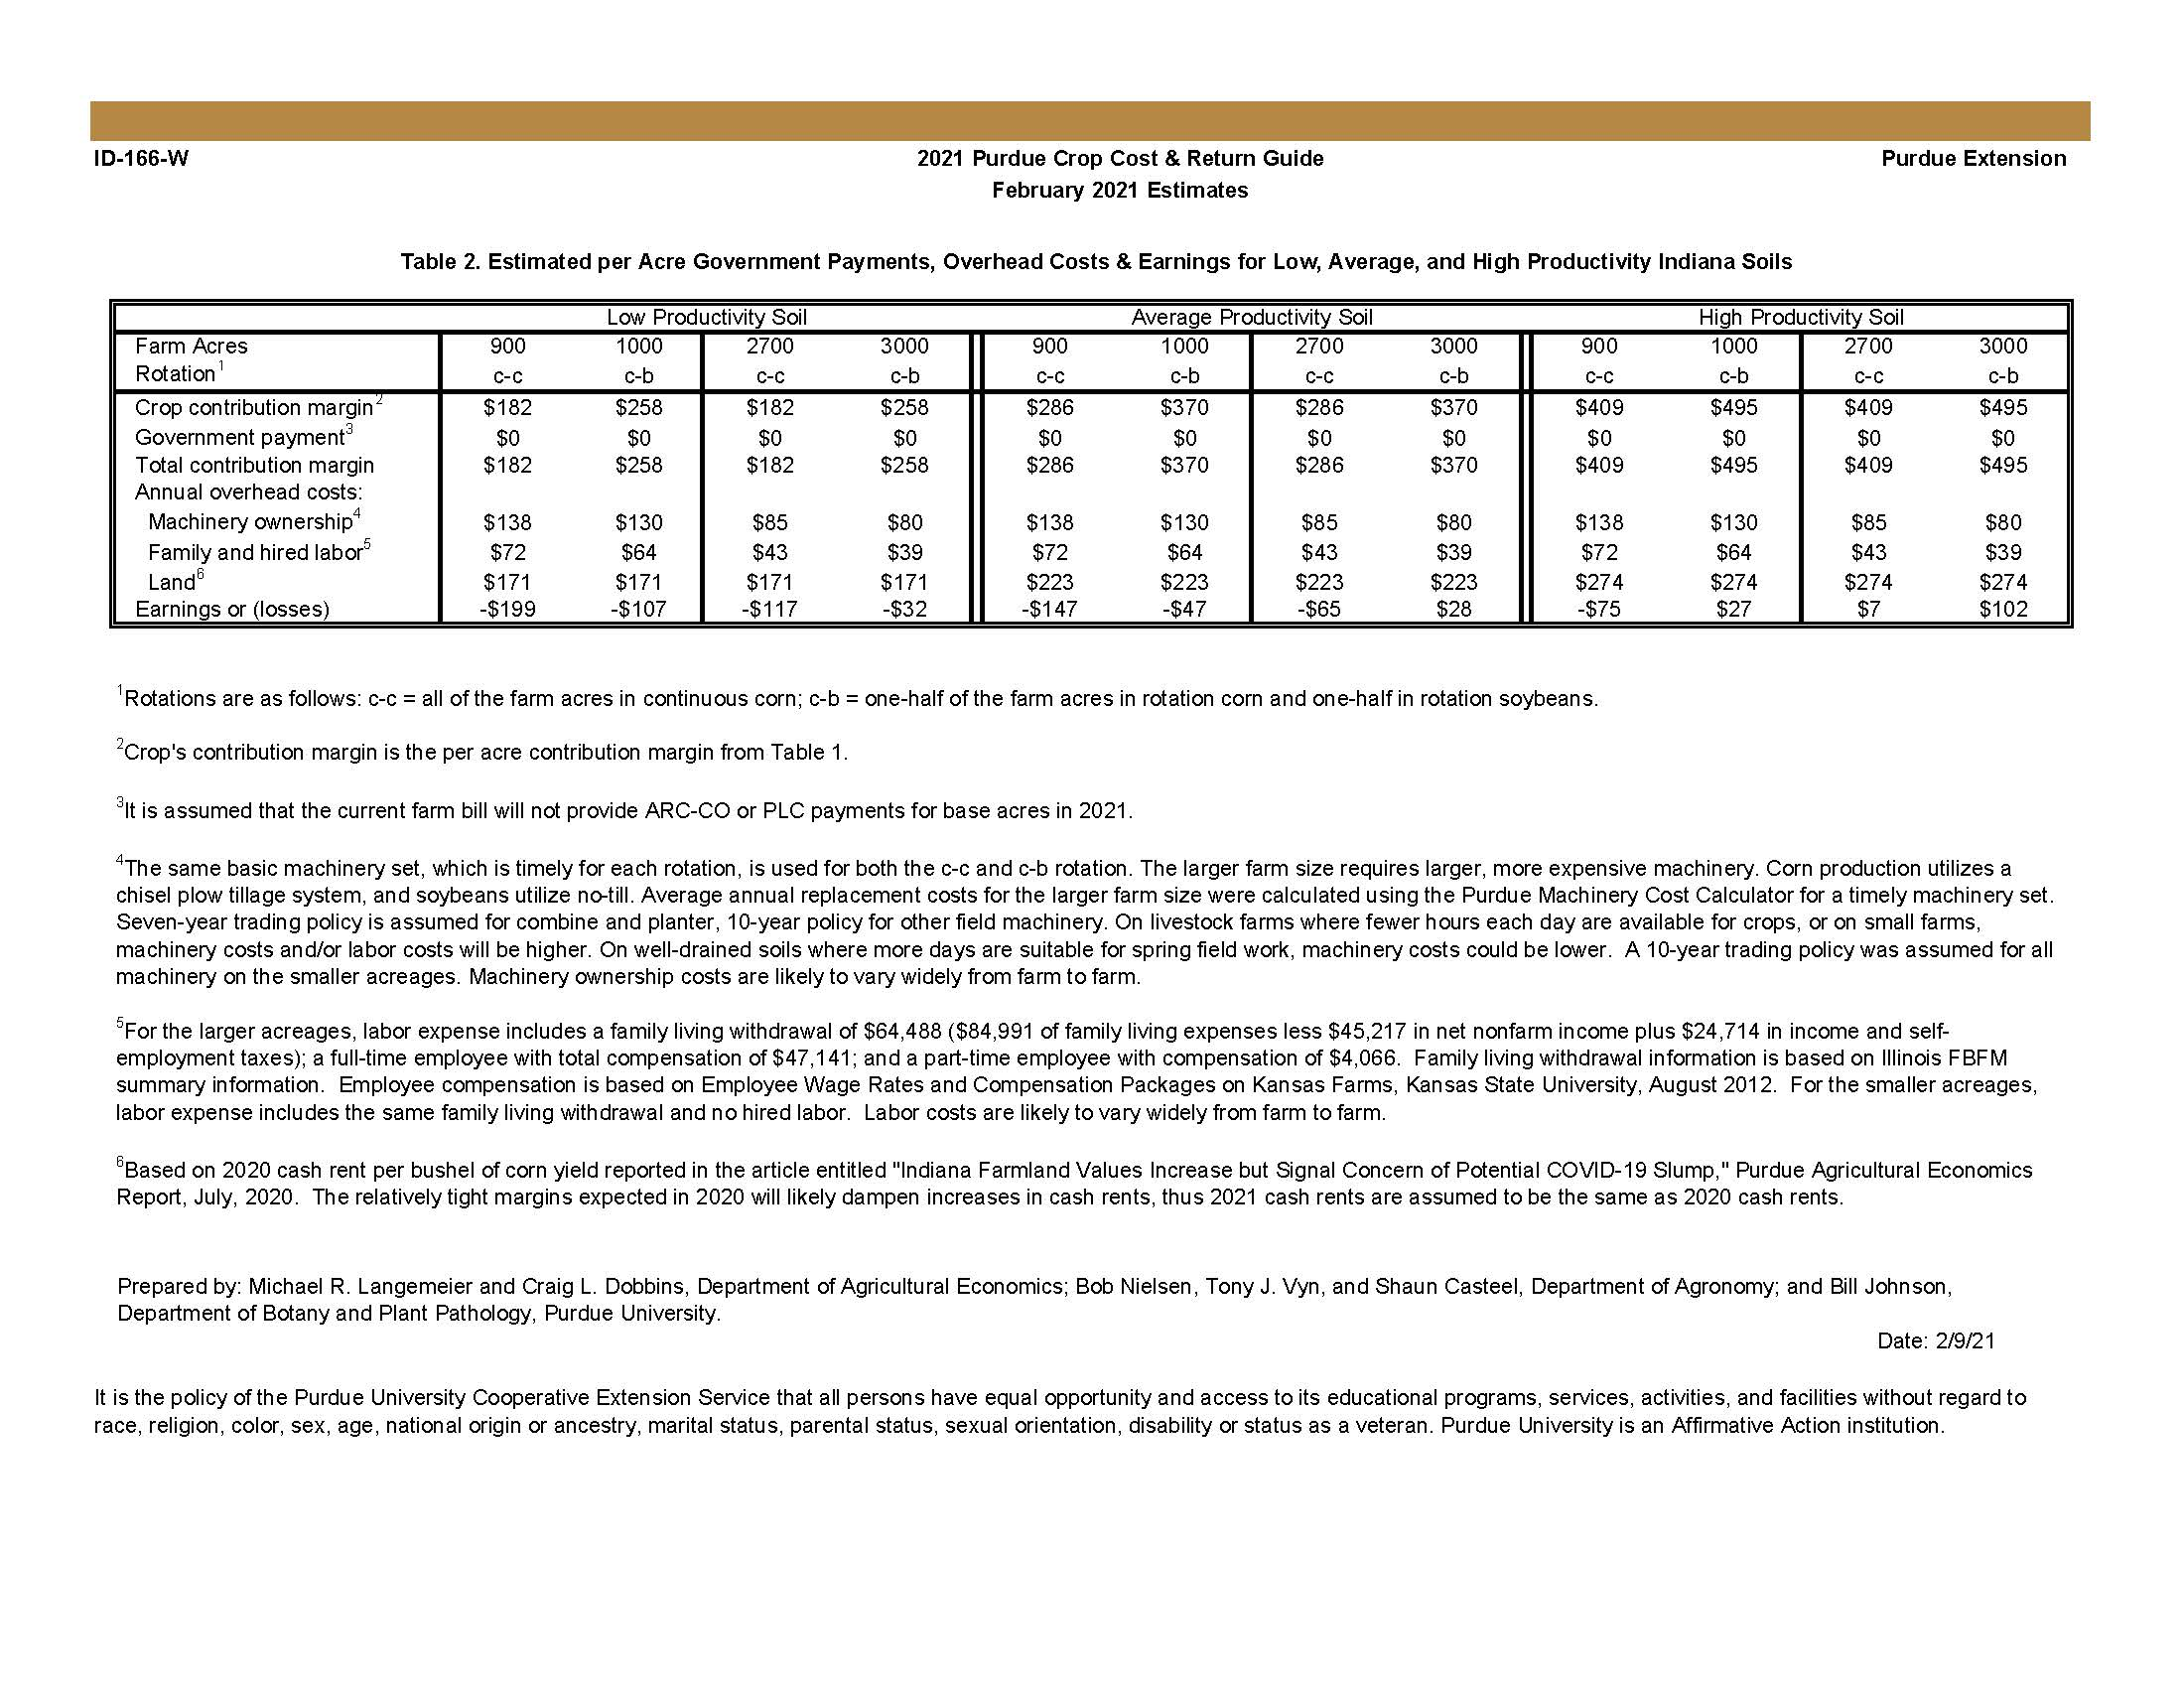 2021 Crop Budget Guide, page 3